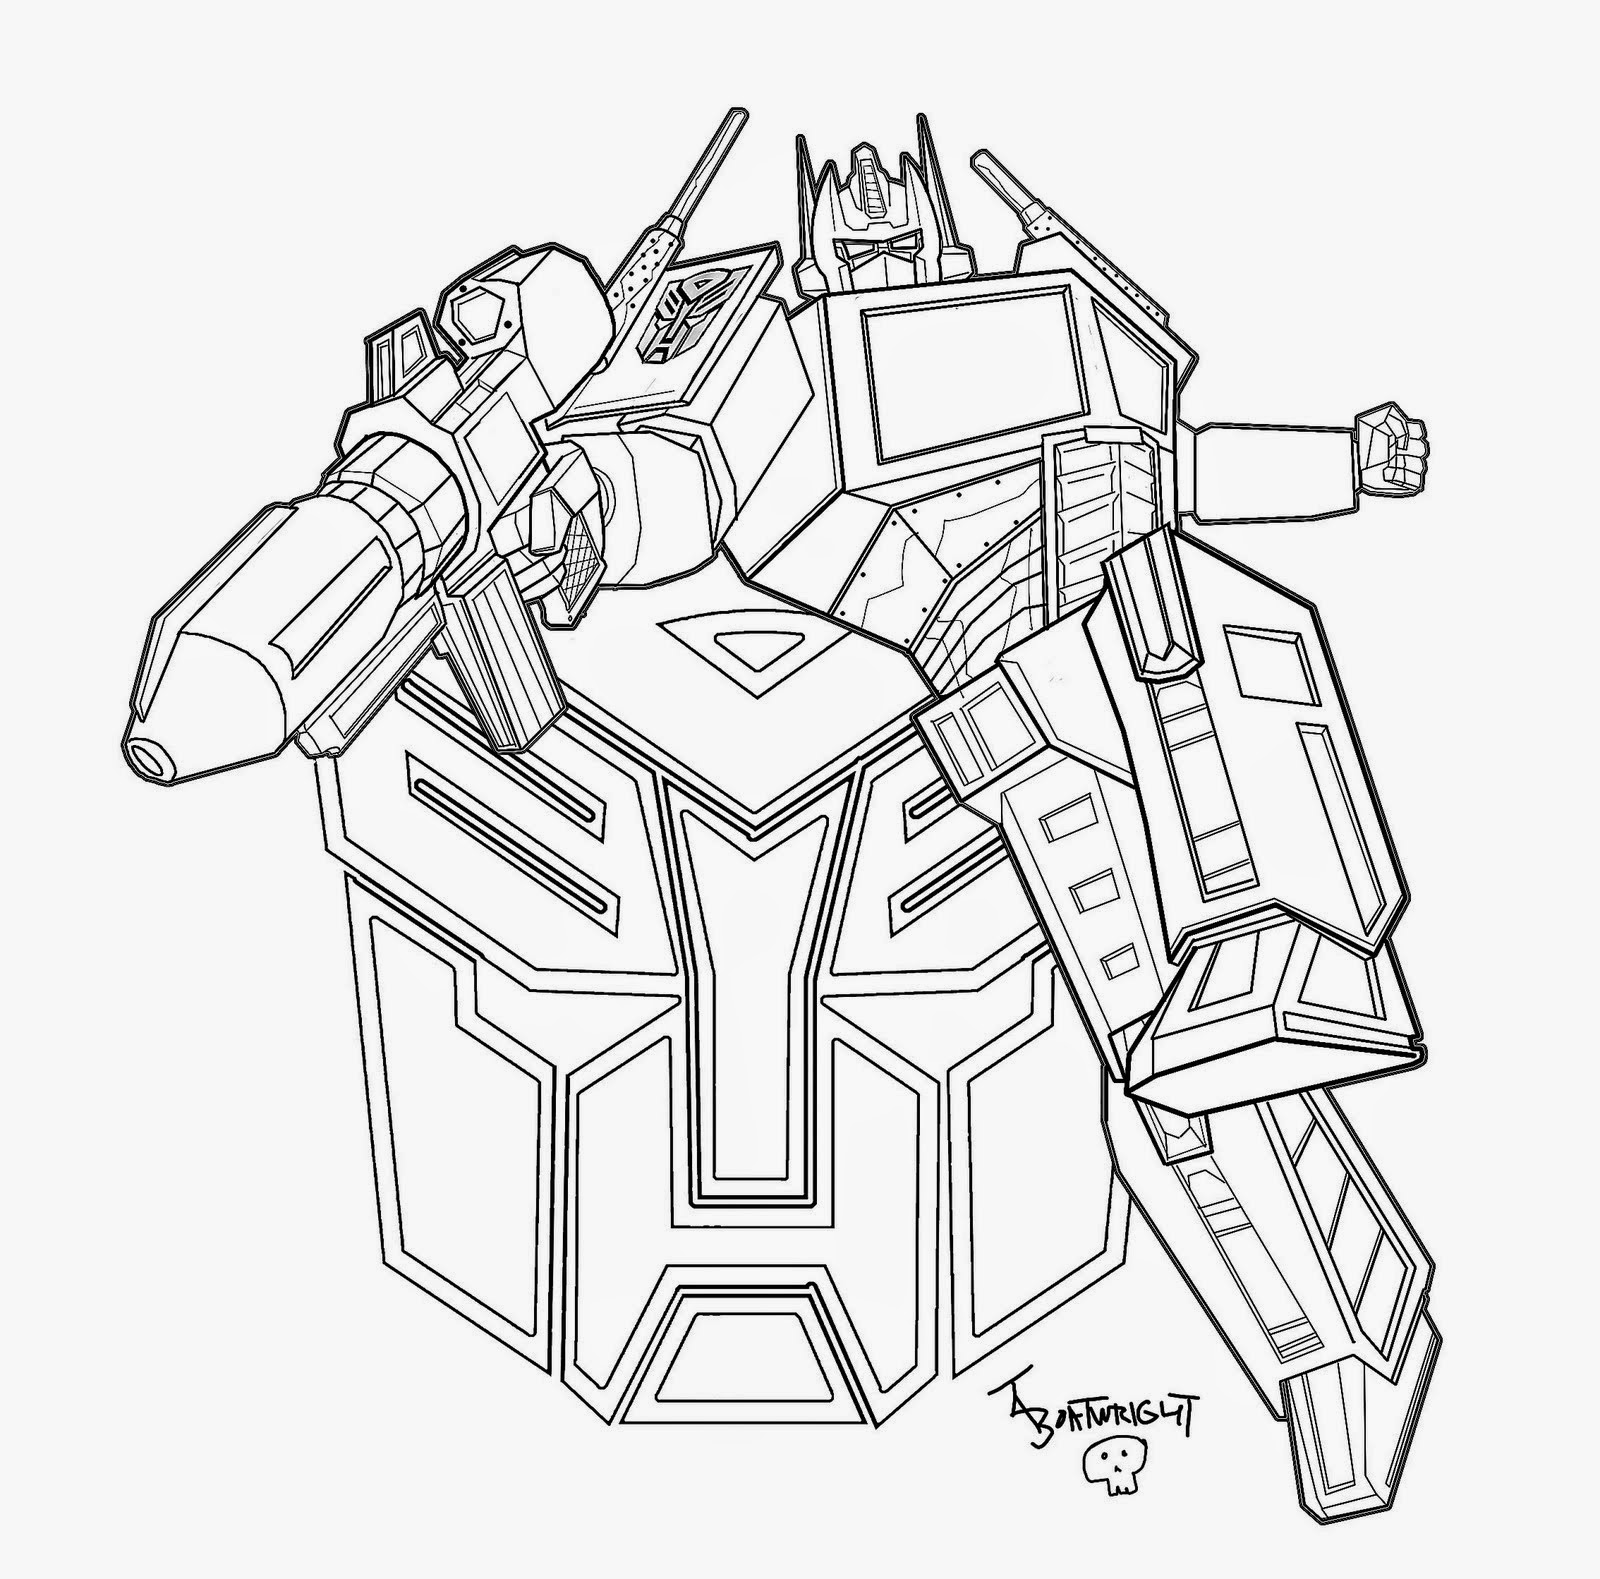 Optimus Prime Coloring Pages - Best Coloring Pages For Kids | 1579x1600